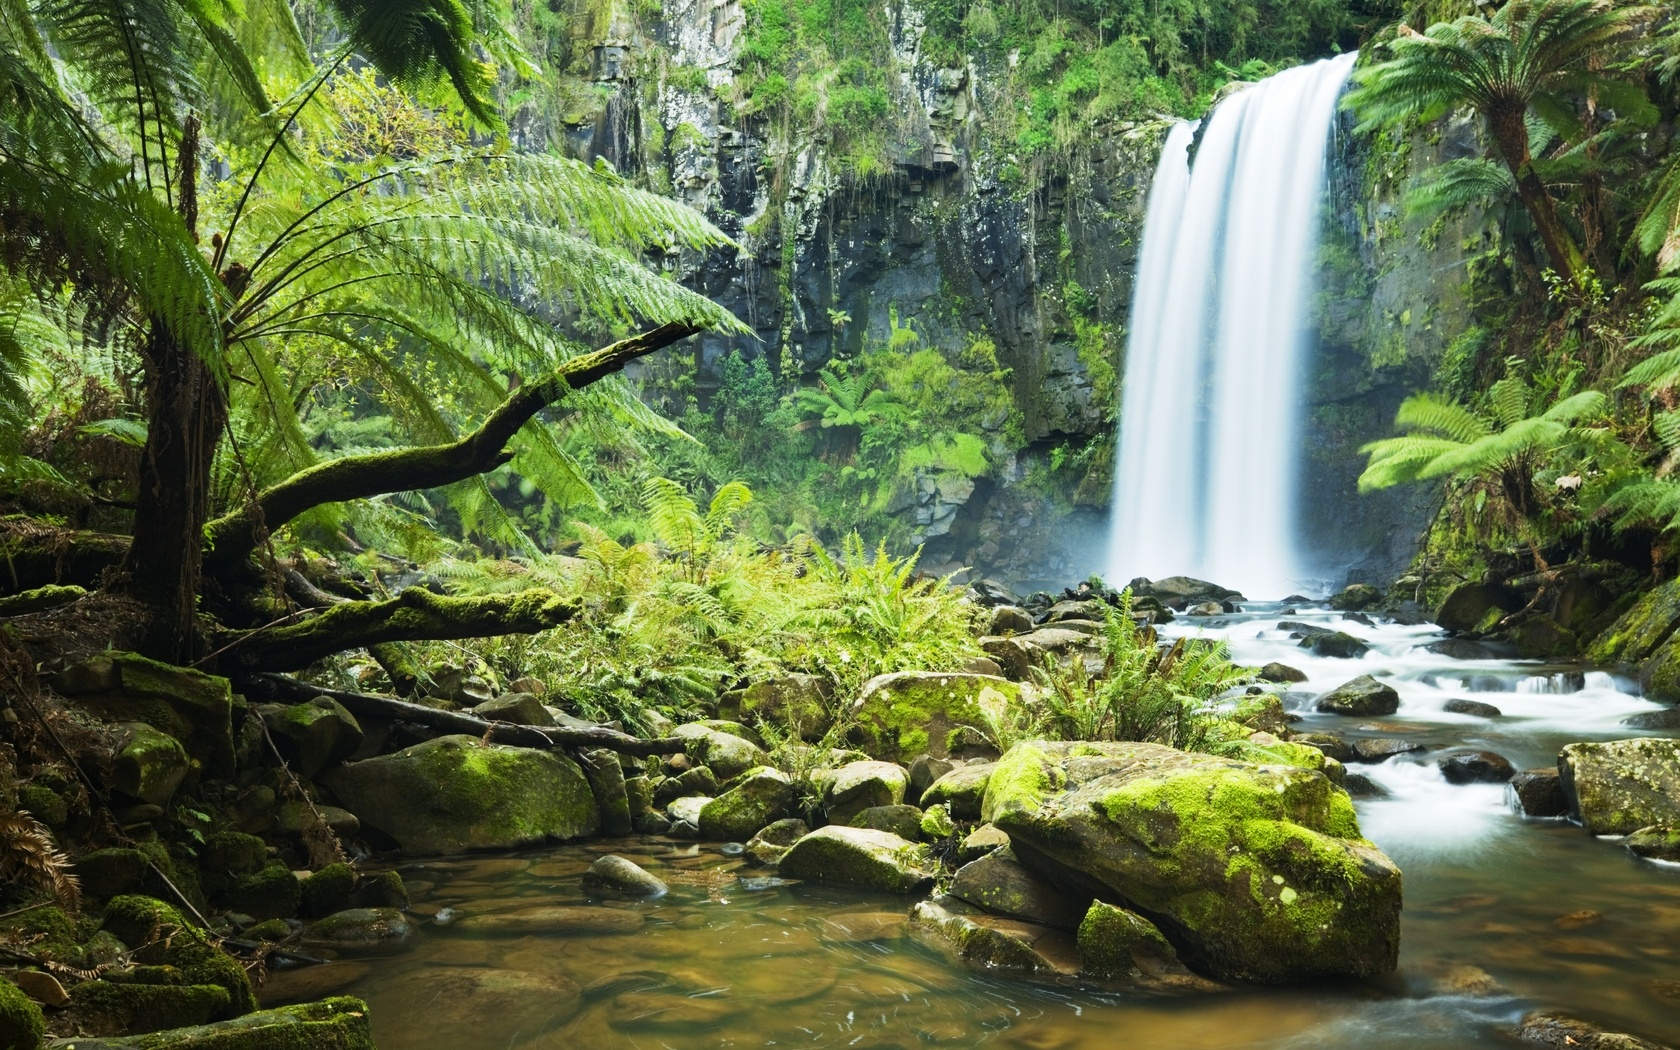 Forest River Waterfall  1680 x 1050  Download  Close